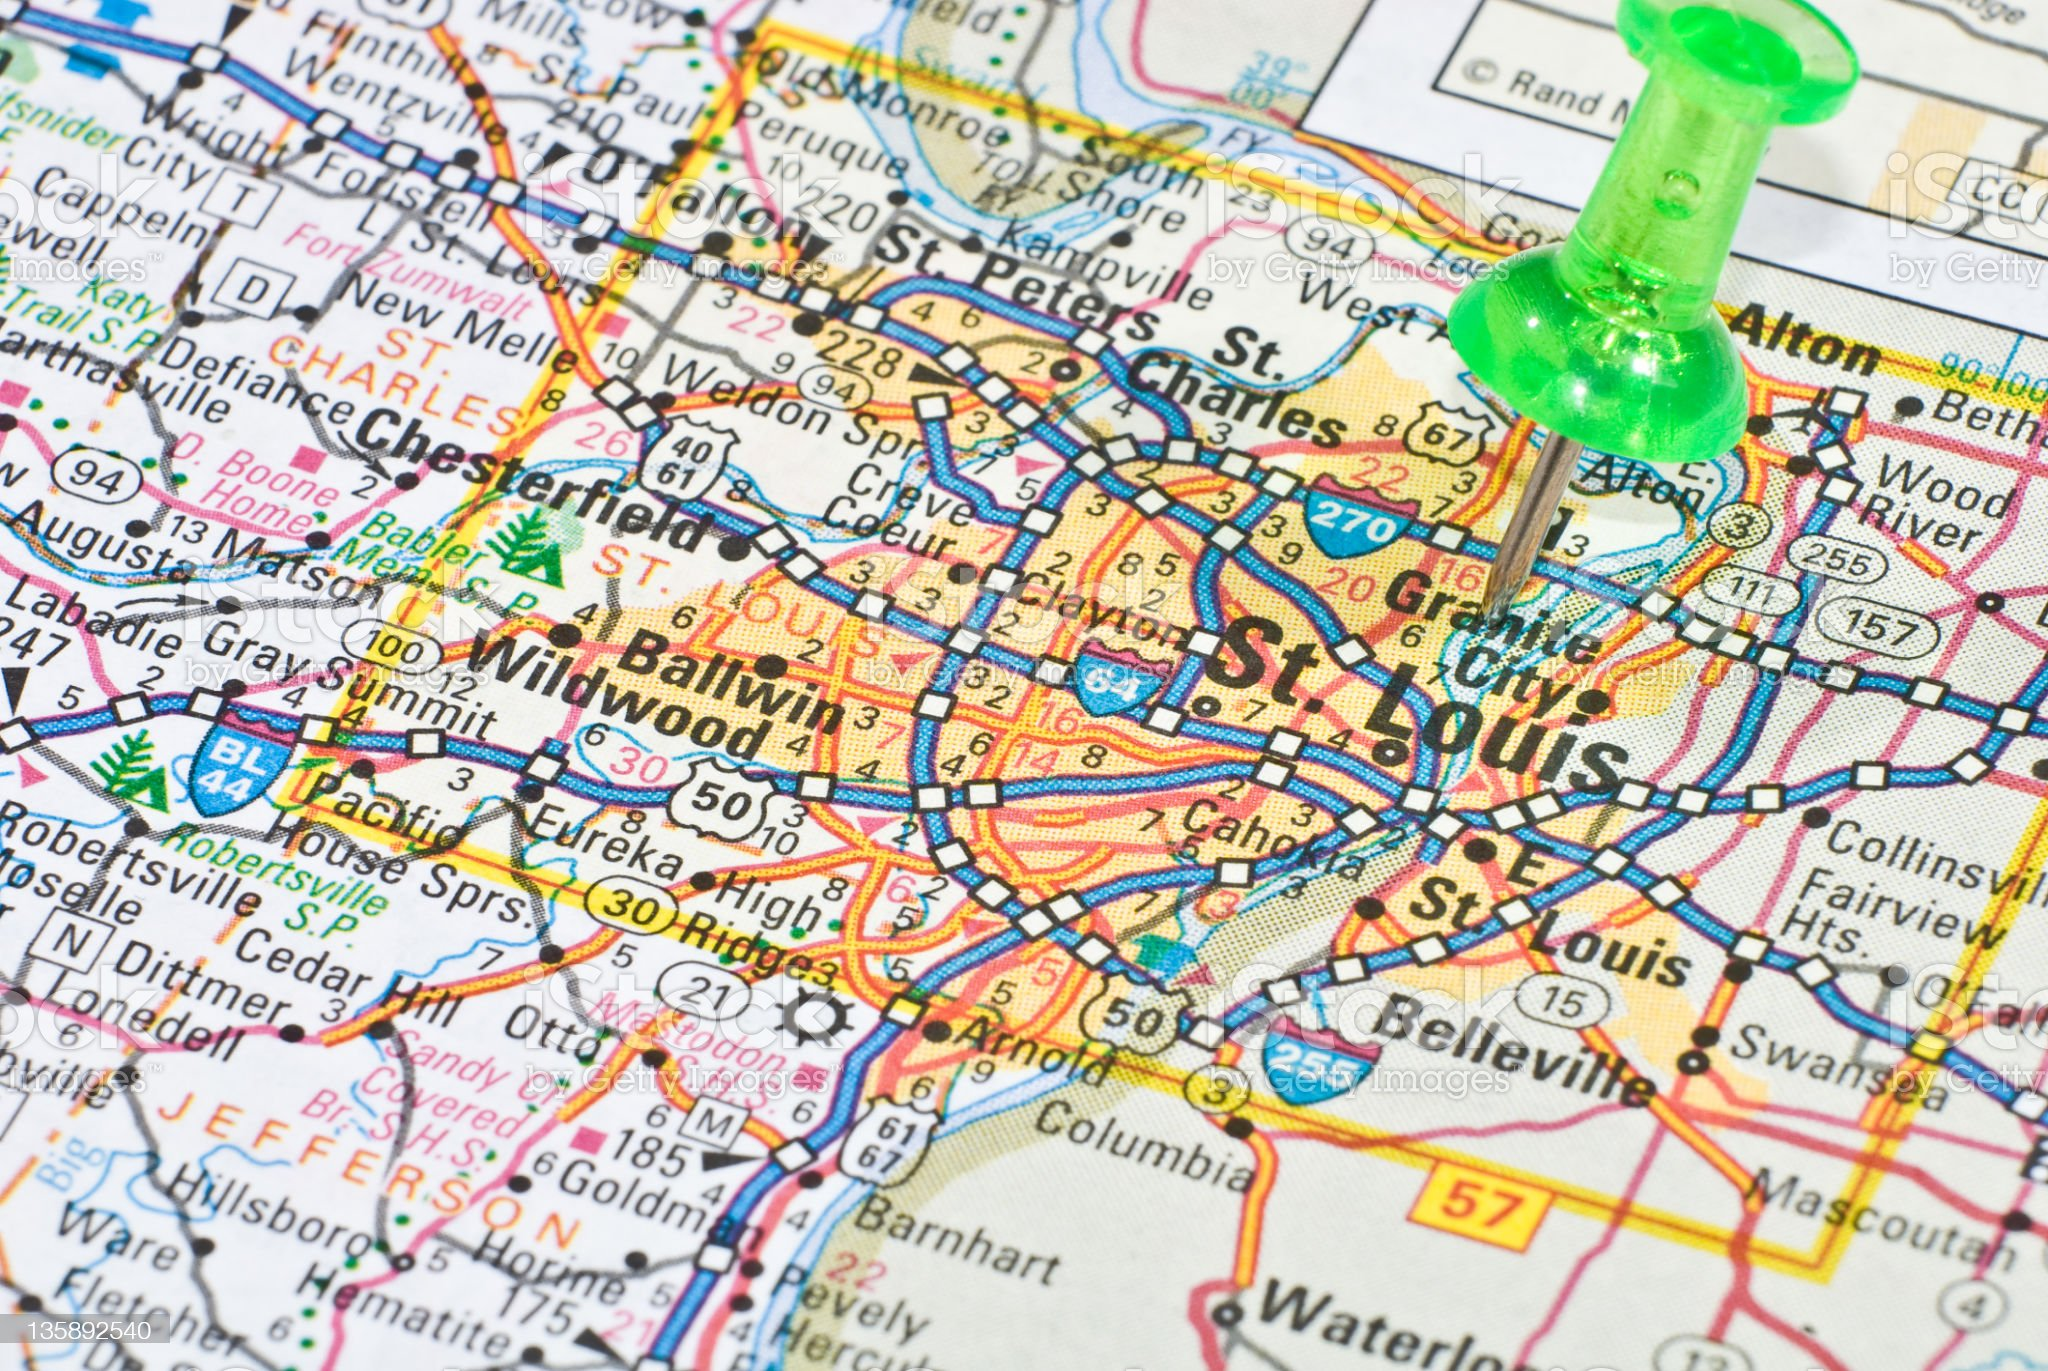 Close-up map of Saint Louis with green pin on it royalty-free stock photo